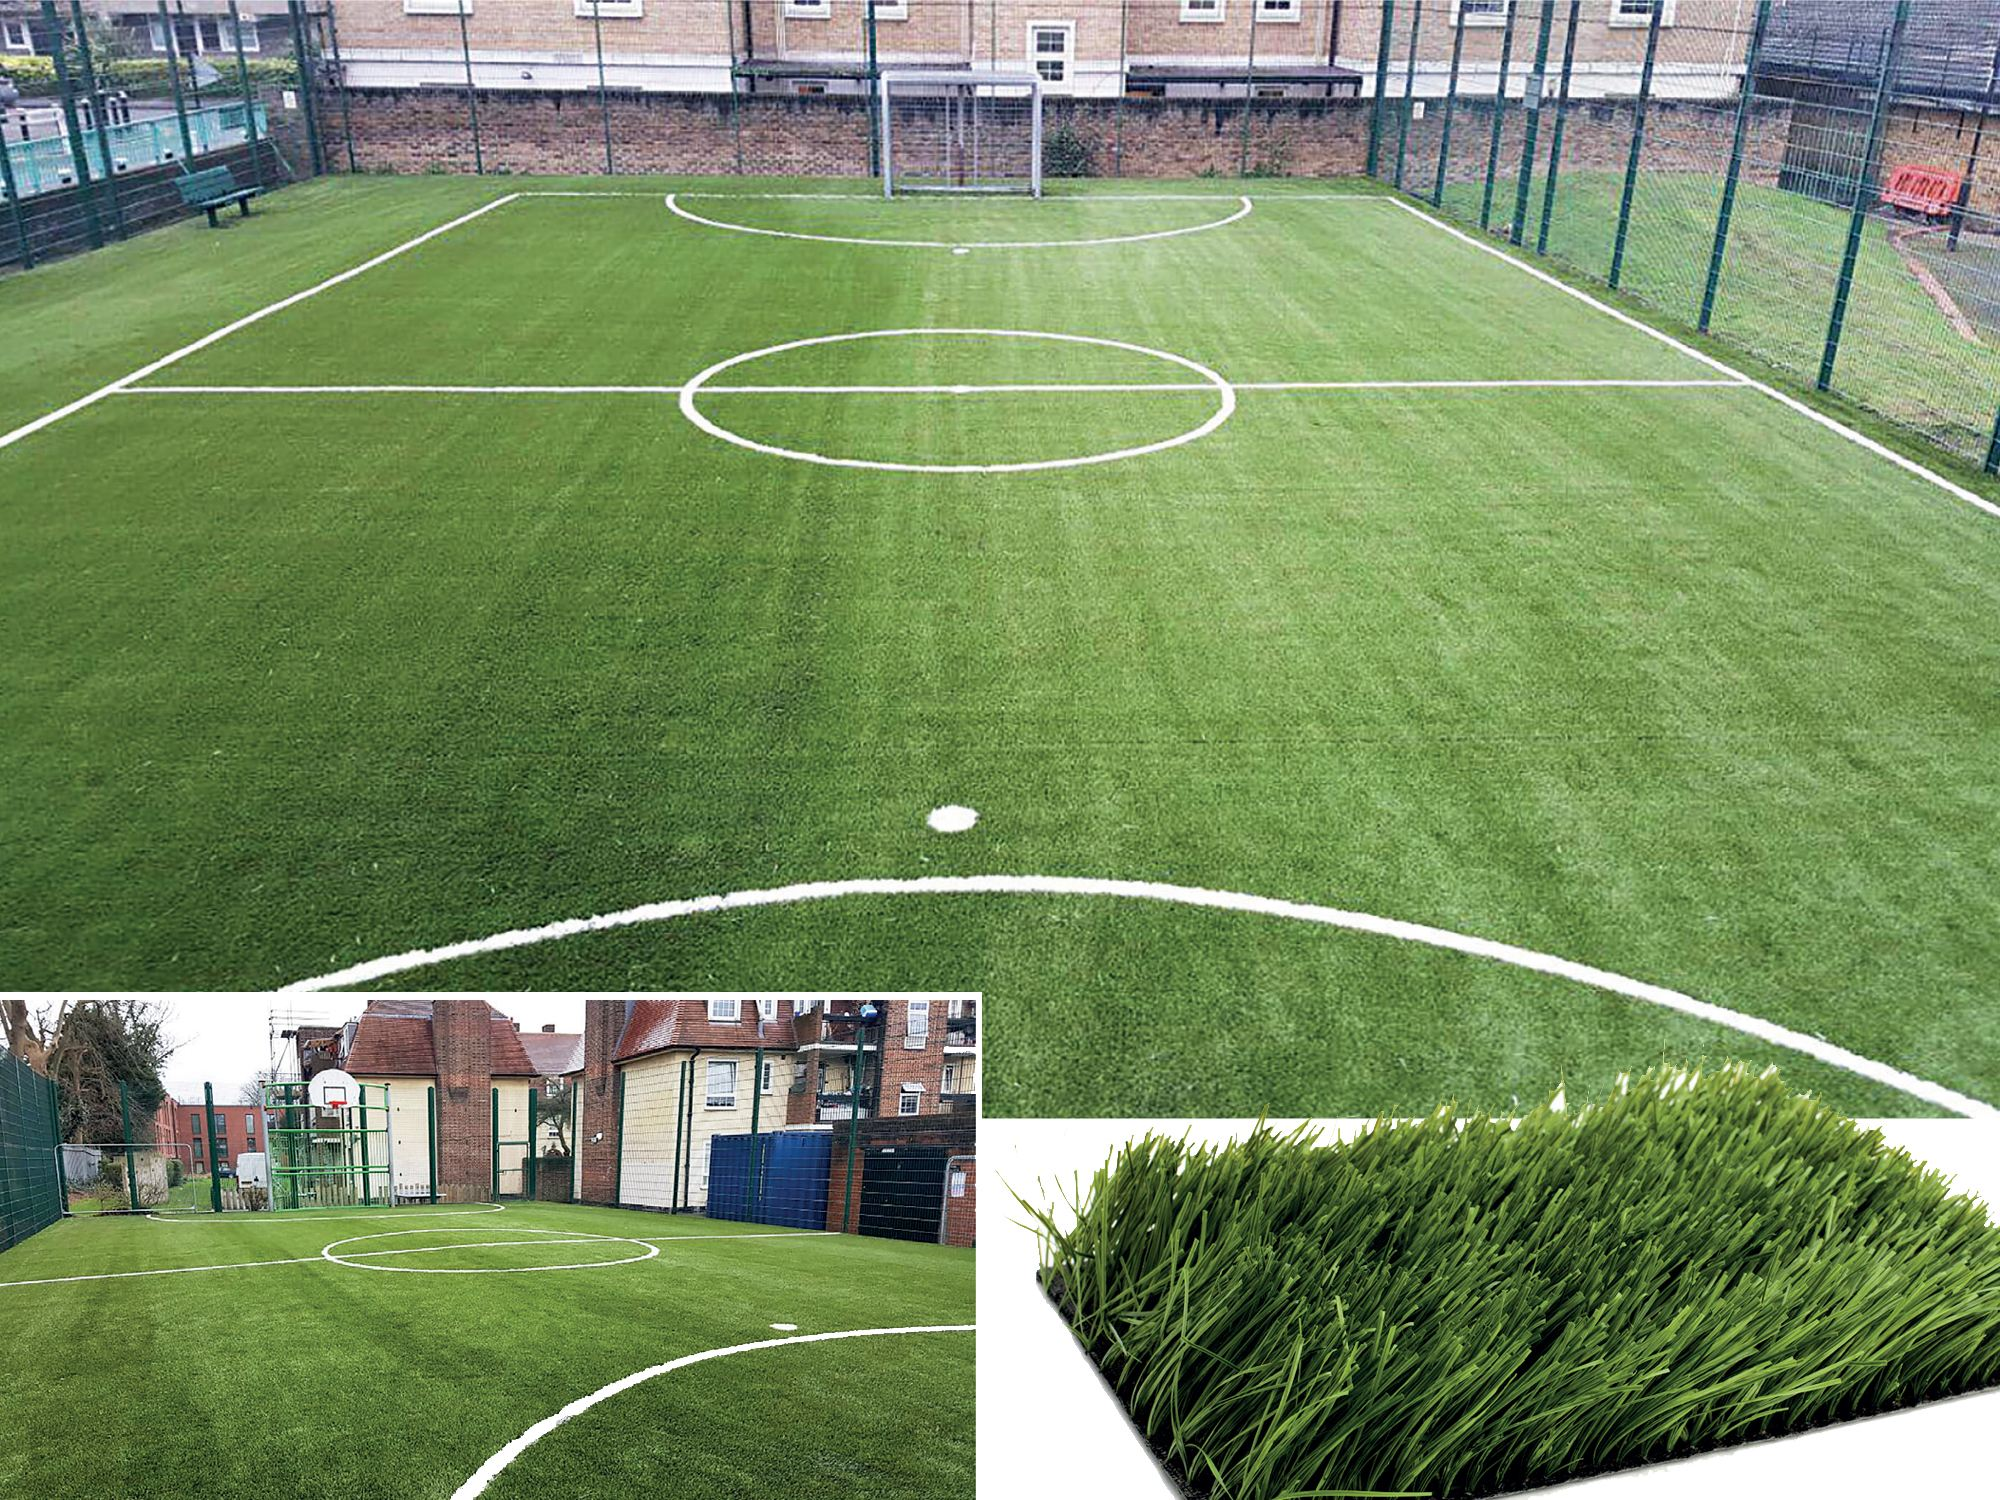 PPG - 3G Turf options